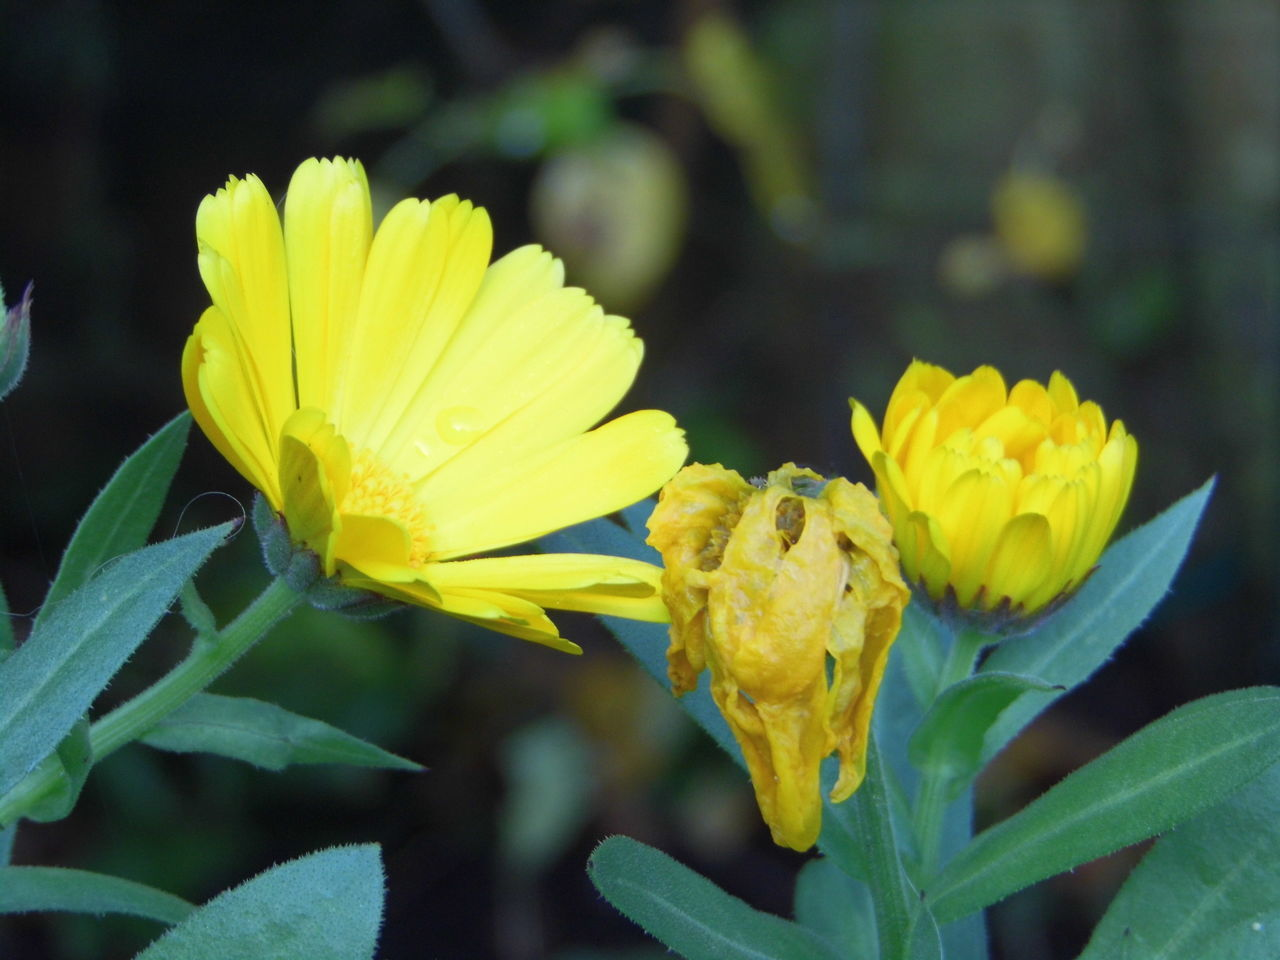 flower, yellow, petal, fragility, nature, beauty in nature, growth, freshness, flower head, plant, blooming, no people, outdoors, close-up, focus on foreground, day, springtime